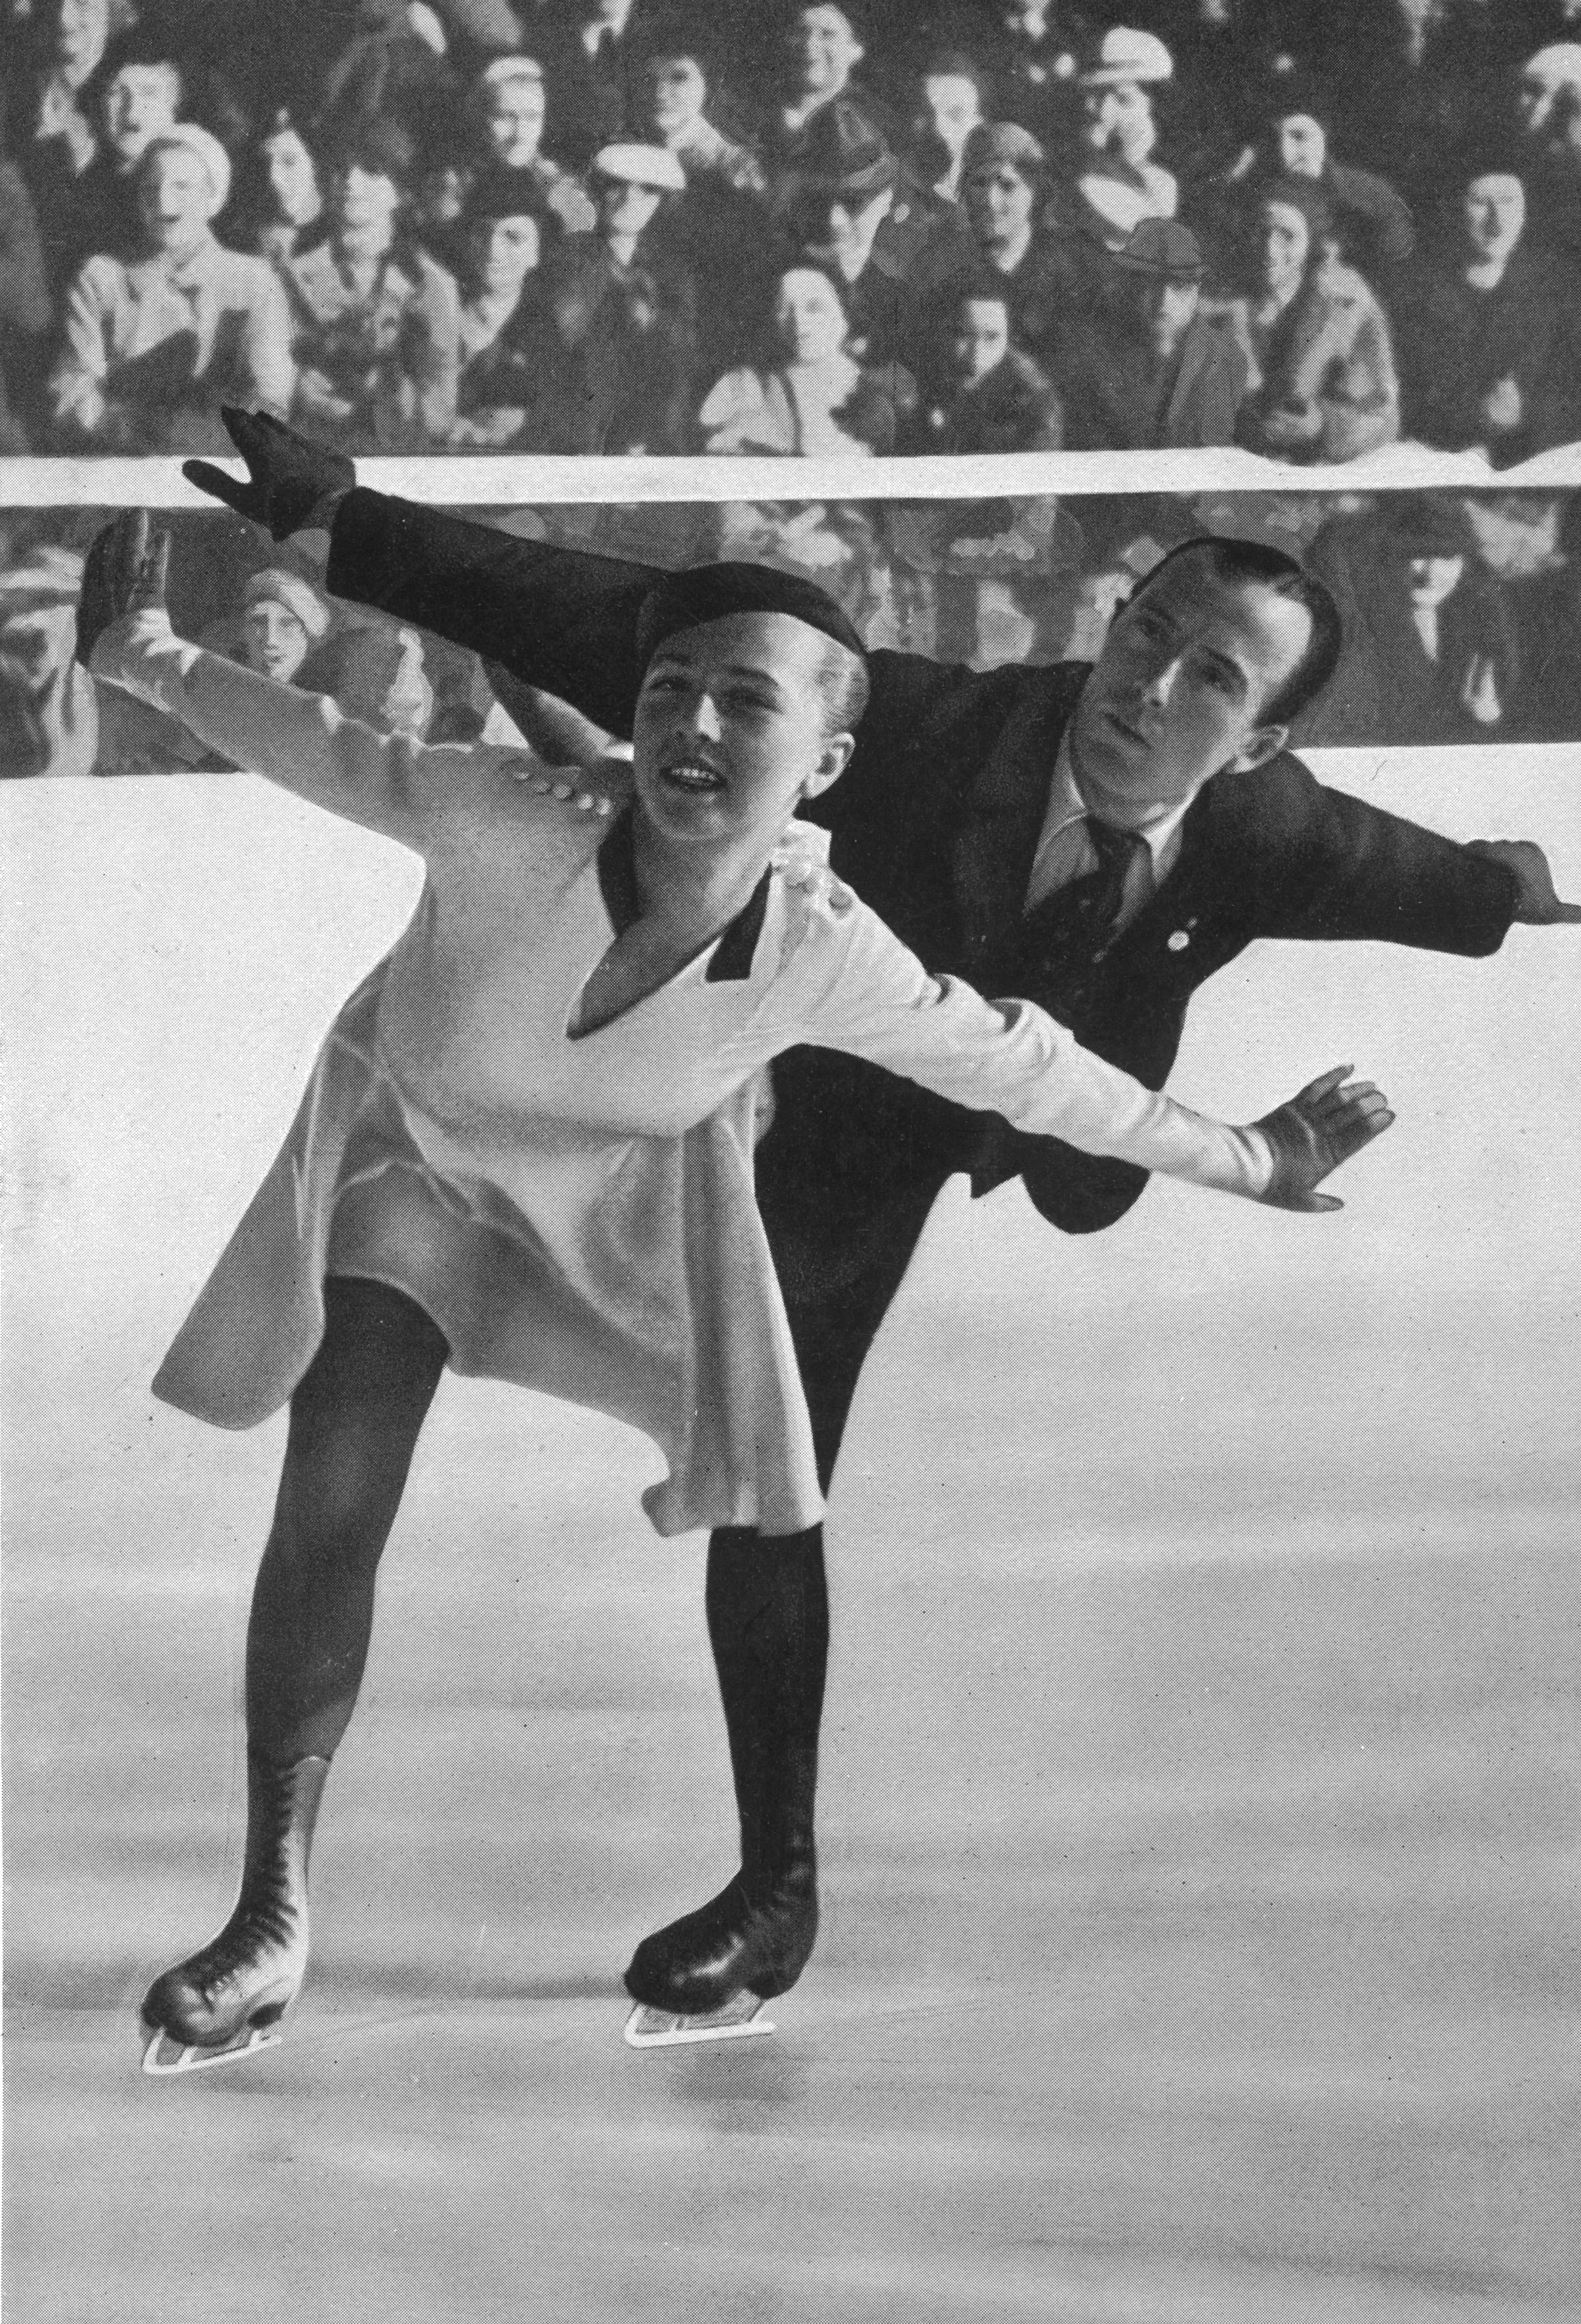 February 1936: Maxie Herber and Ernst Baier winning the 1936 Olympic Pairs figure skating gold medal at Garmisch-Partenkirchen. (Photo by Hulton Archive/Getty Images)